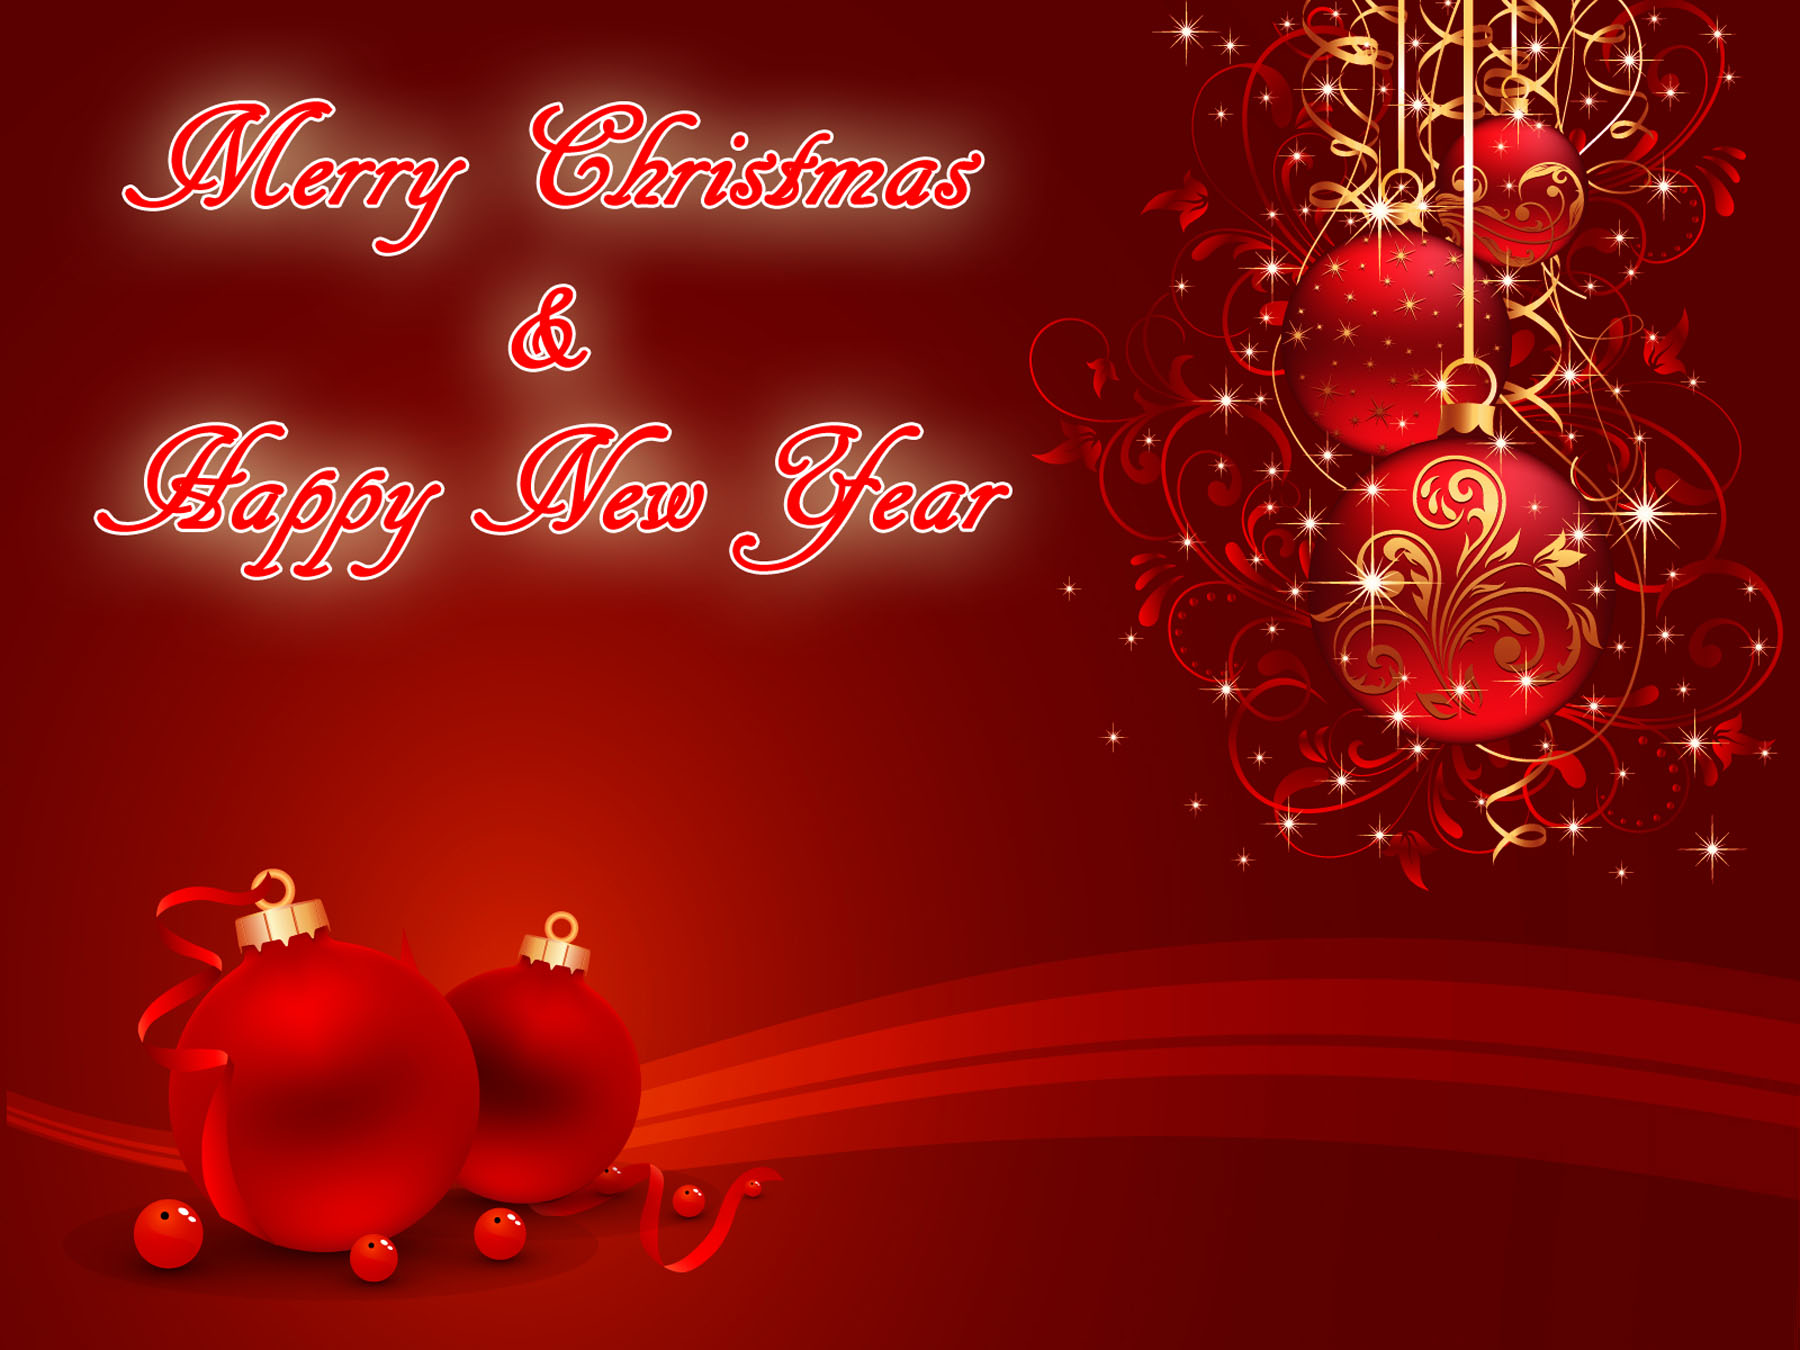 New year 2014 christmas 2013 wallpapers greeting cards travel new year 2014 christmas 2013 wallpapers greeting cards m4hsunfo